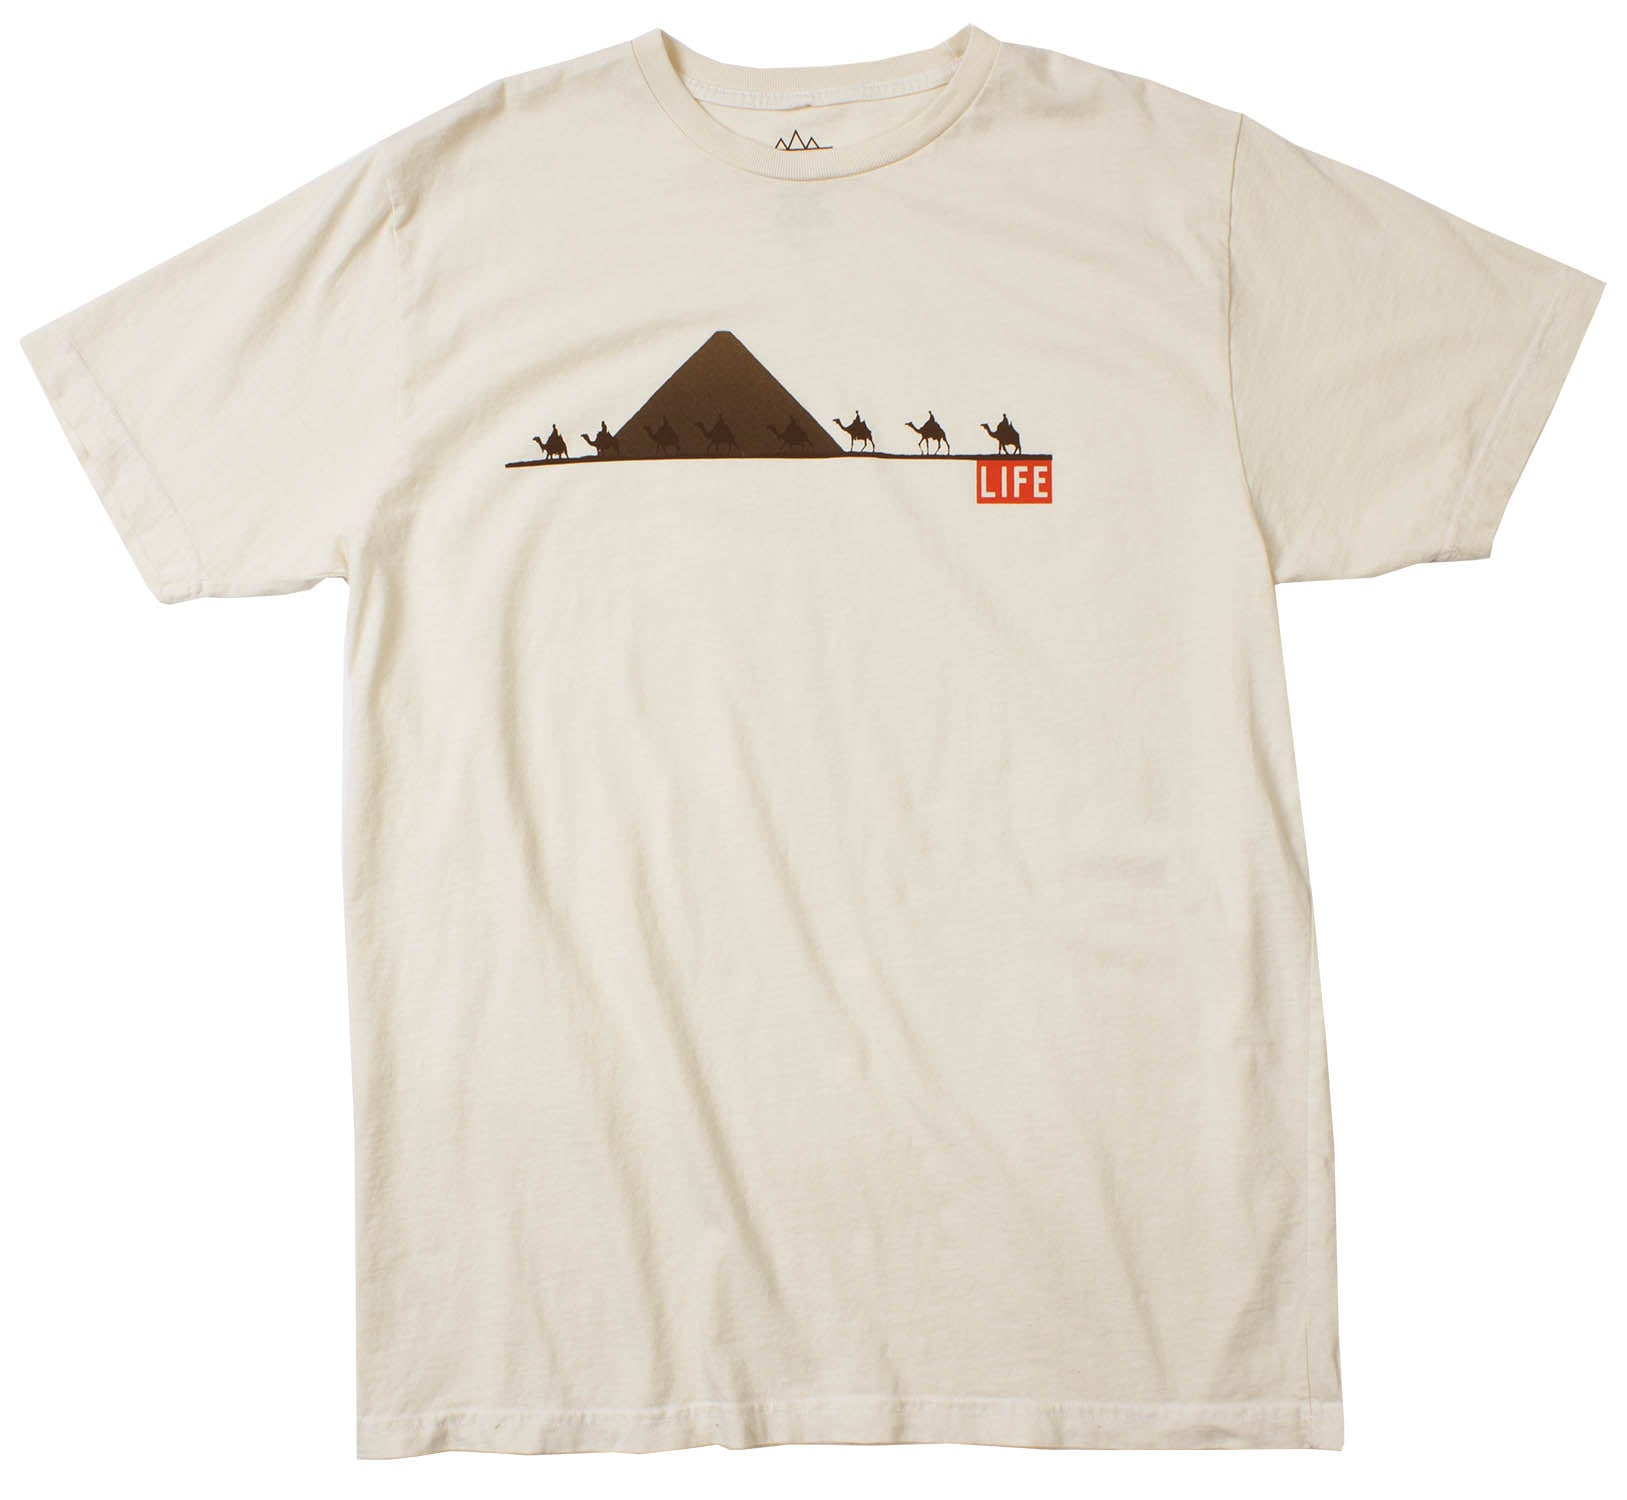 Life Camels Pyramids Men's Natural Graphic Tee by Altru Apparel